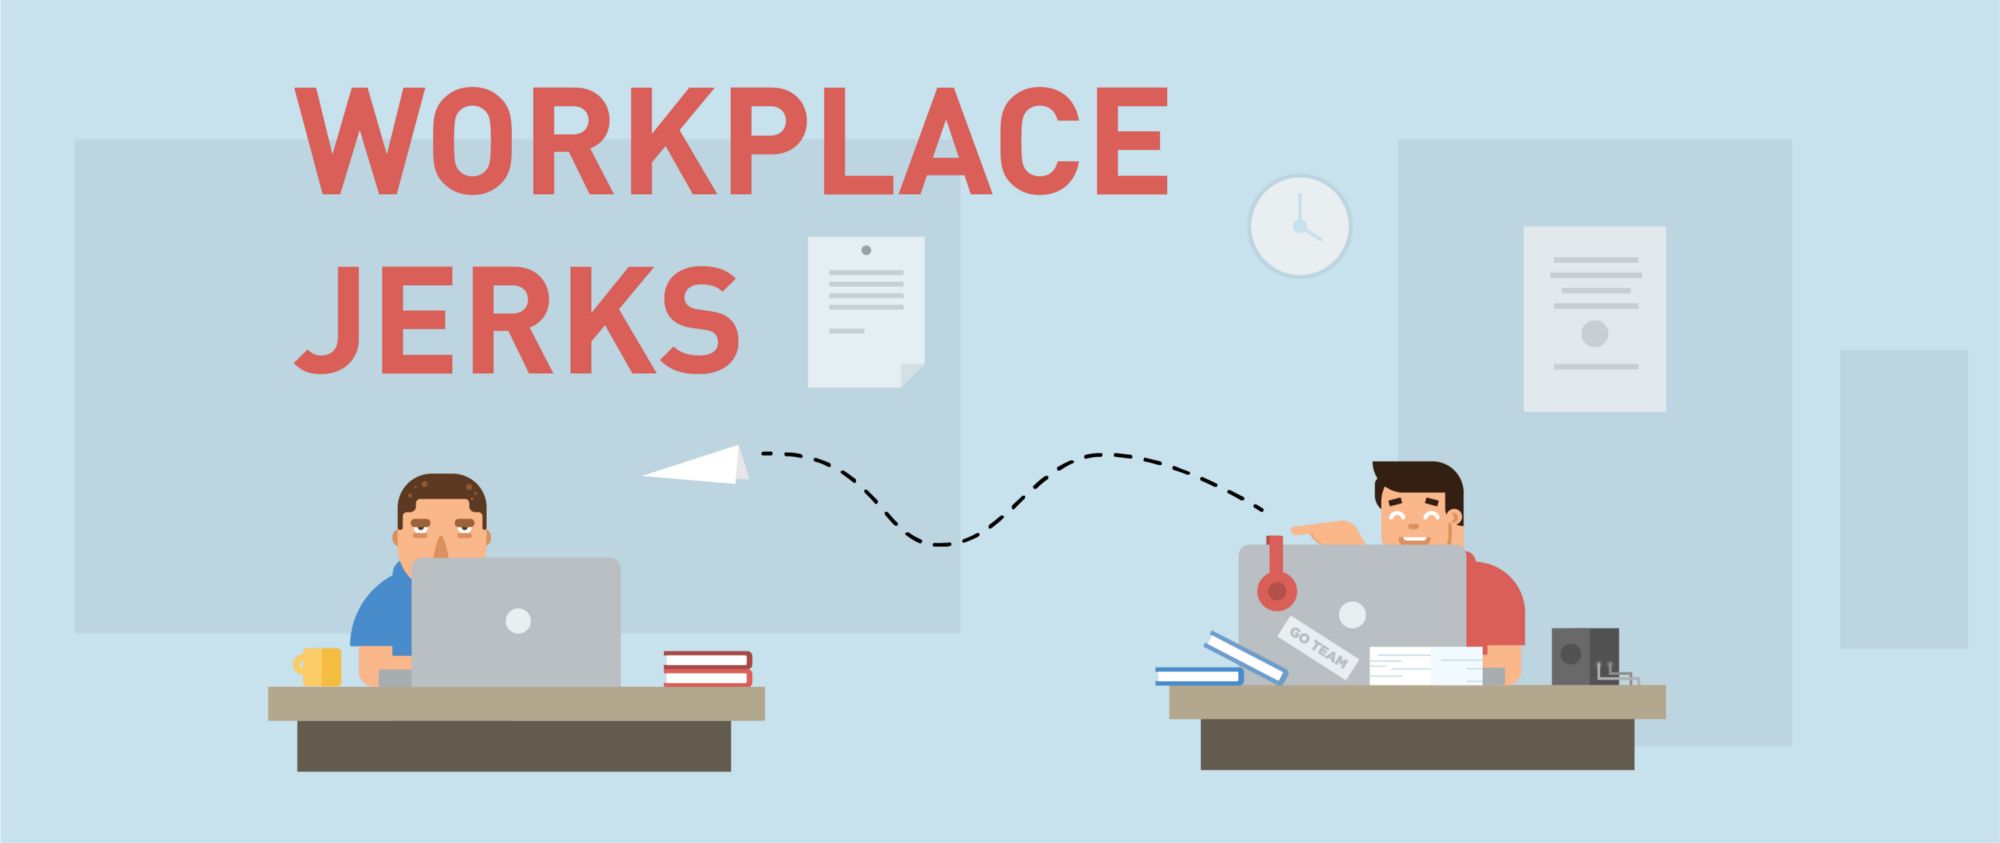 How to Deal with Jerks at Work